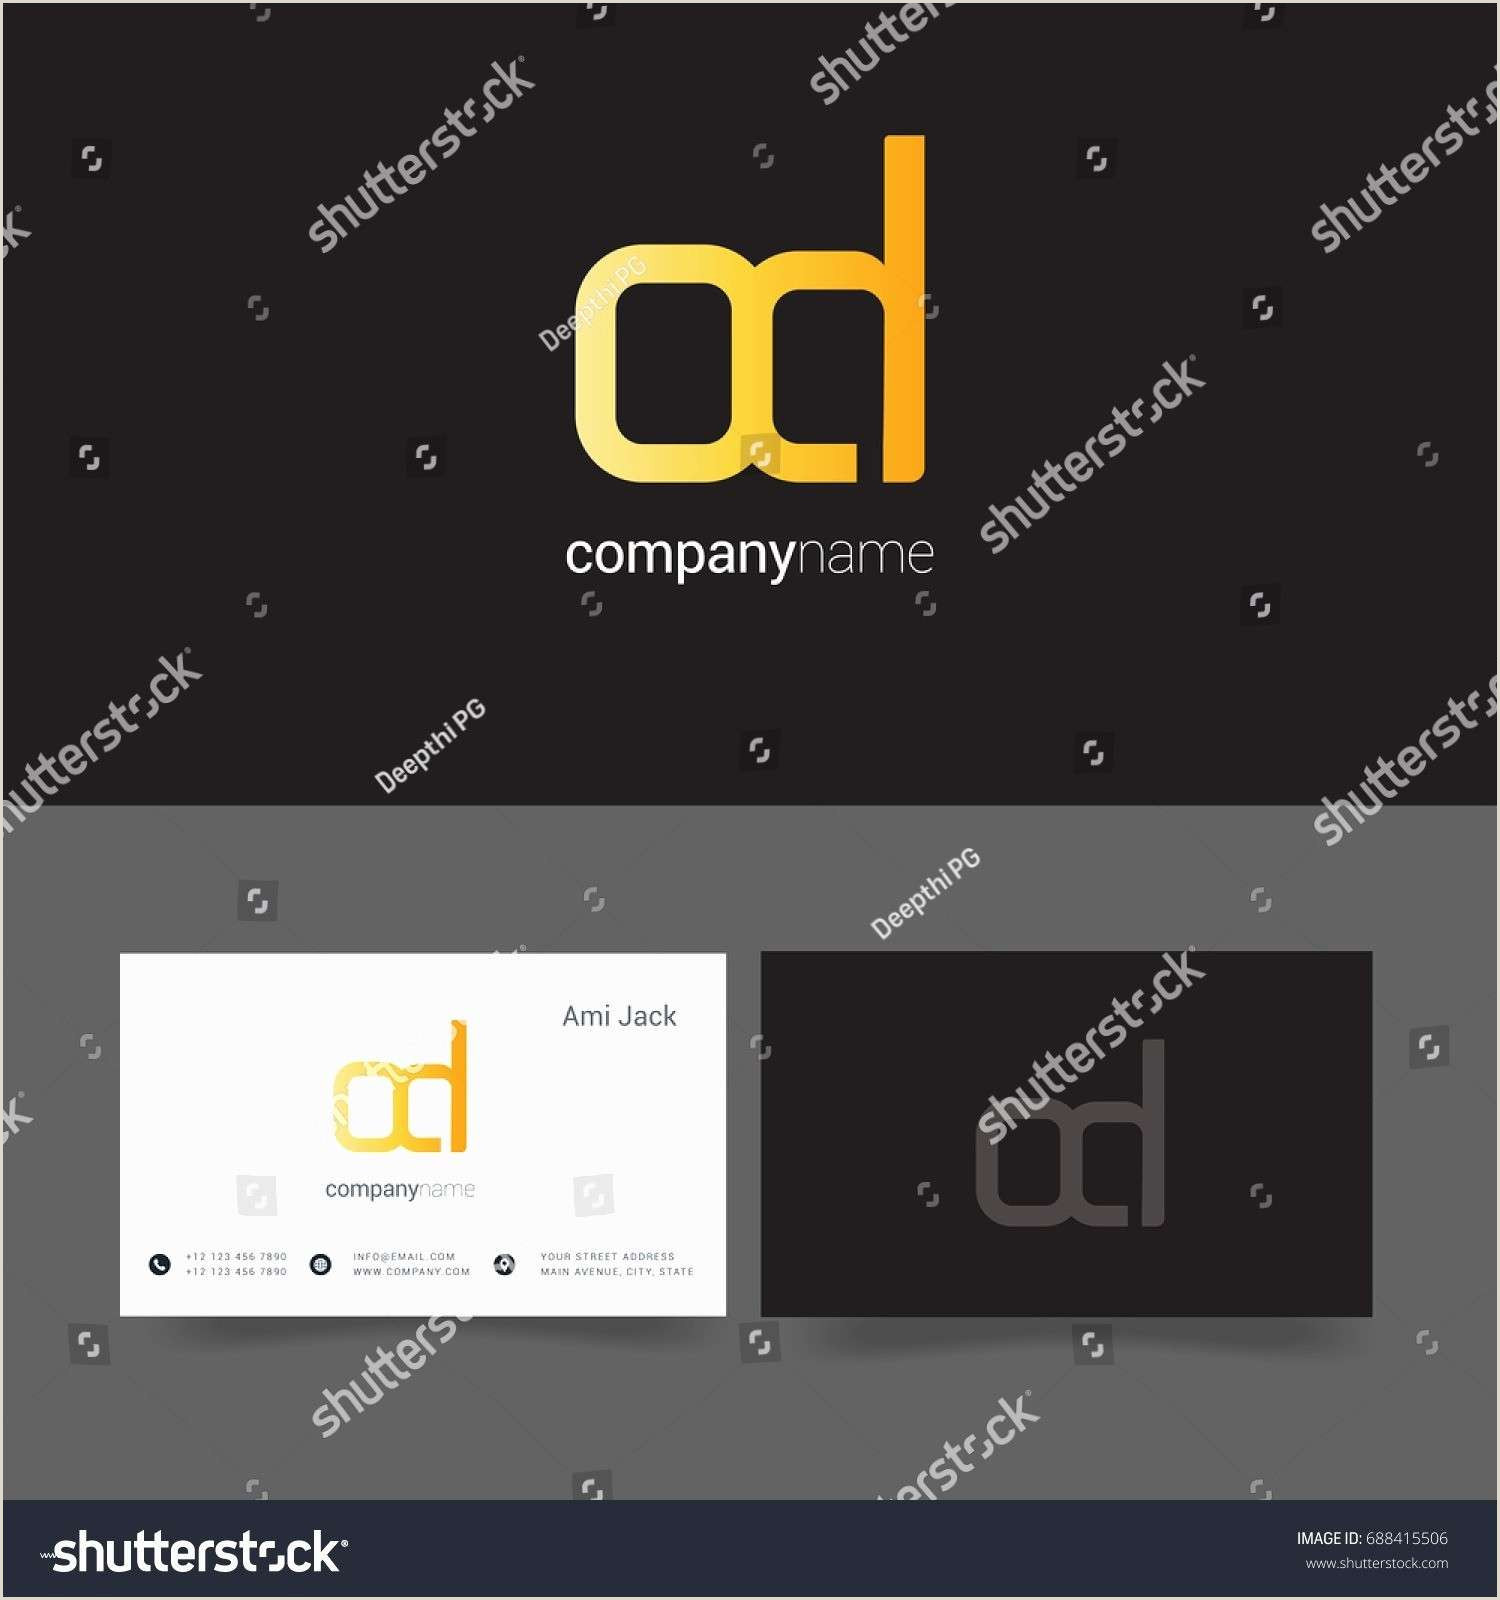 Awesome Unique Handyman Business Cards Free Business Card Templates Apocalomegaproductions